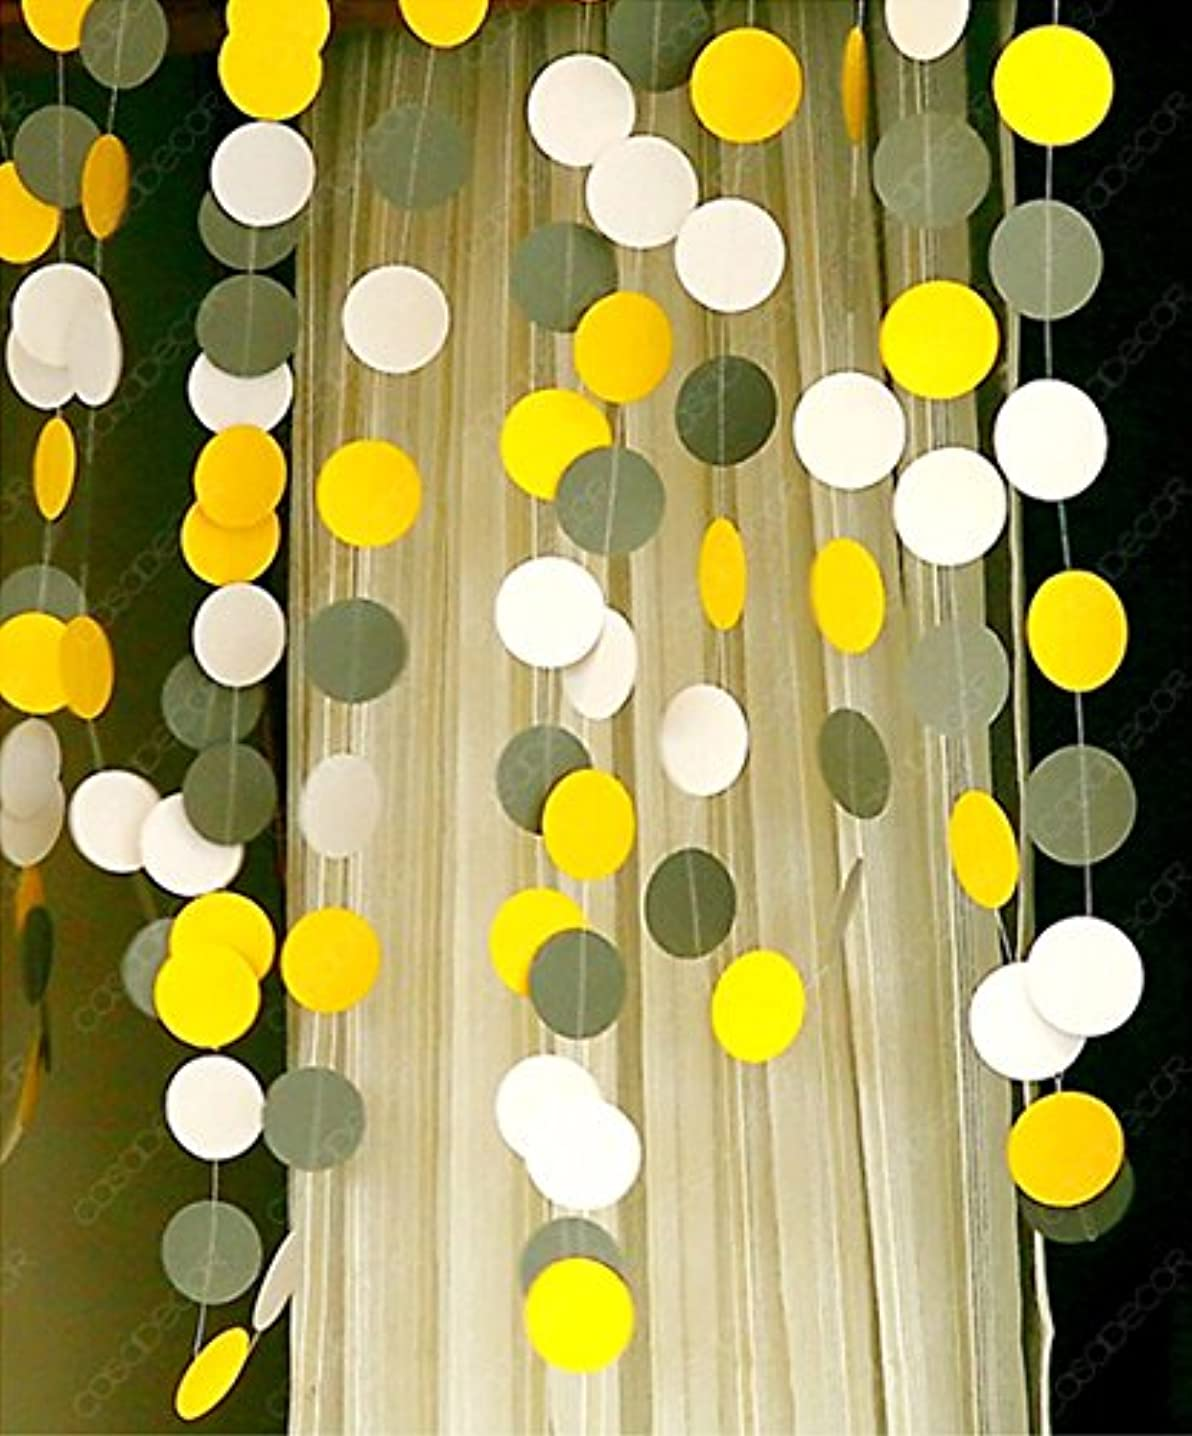 KINGWEDDING Round Dots Hanging Decoration String Paper Garland Wedding Birthday Party Baby Shower Background Decorative,157 inches (Yellow-Grey-White)